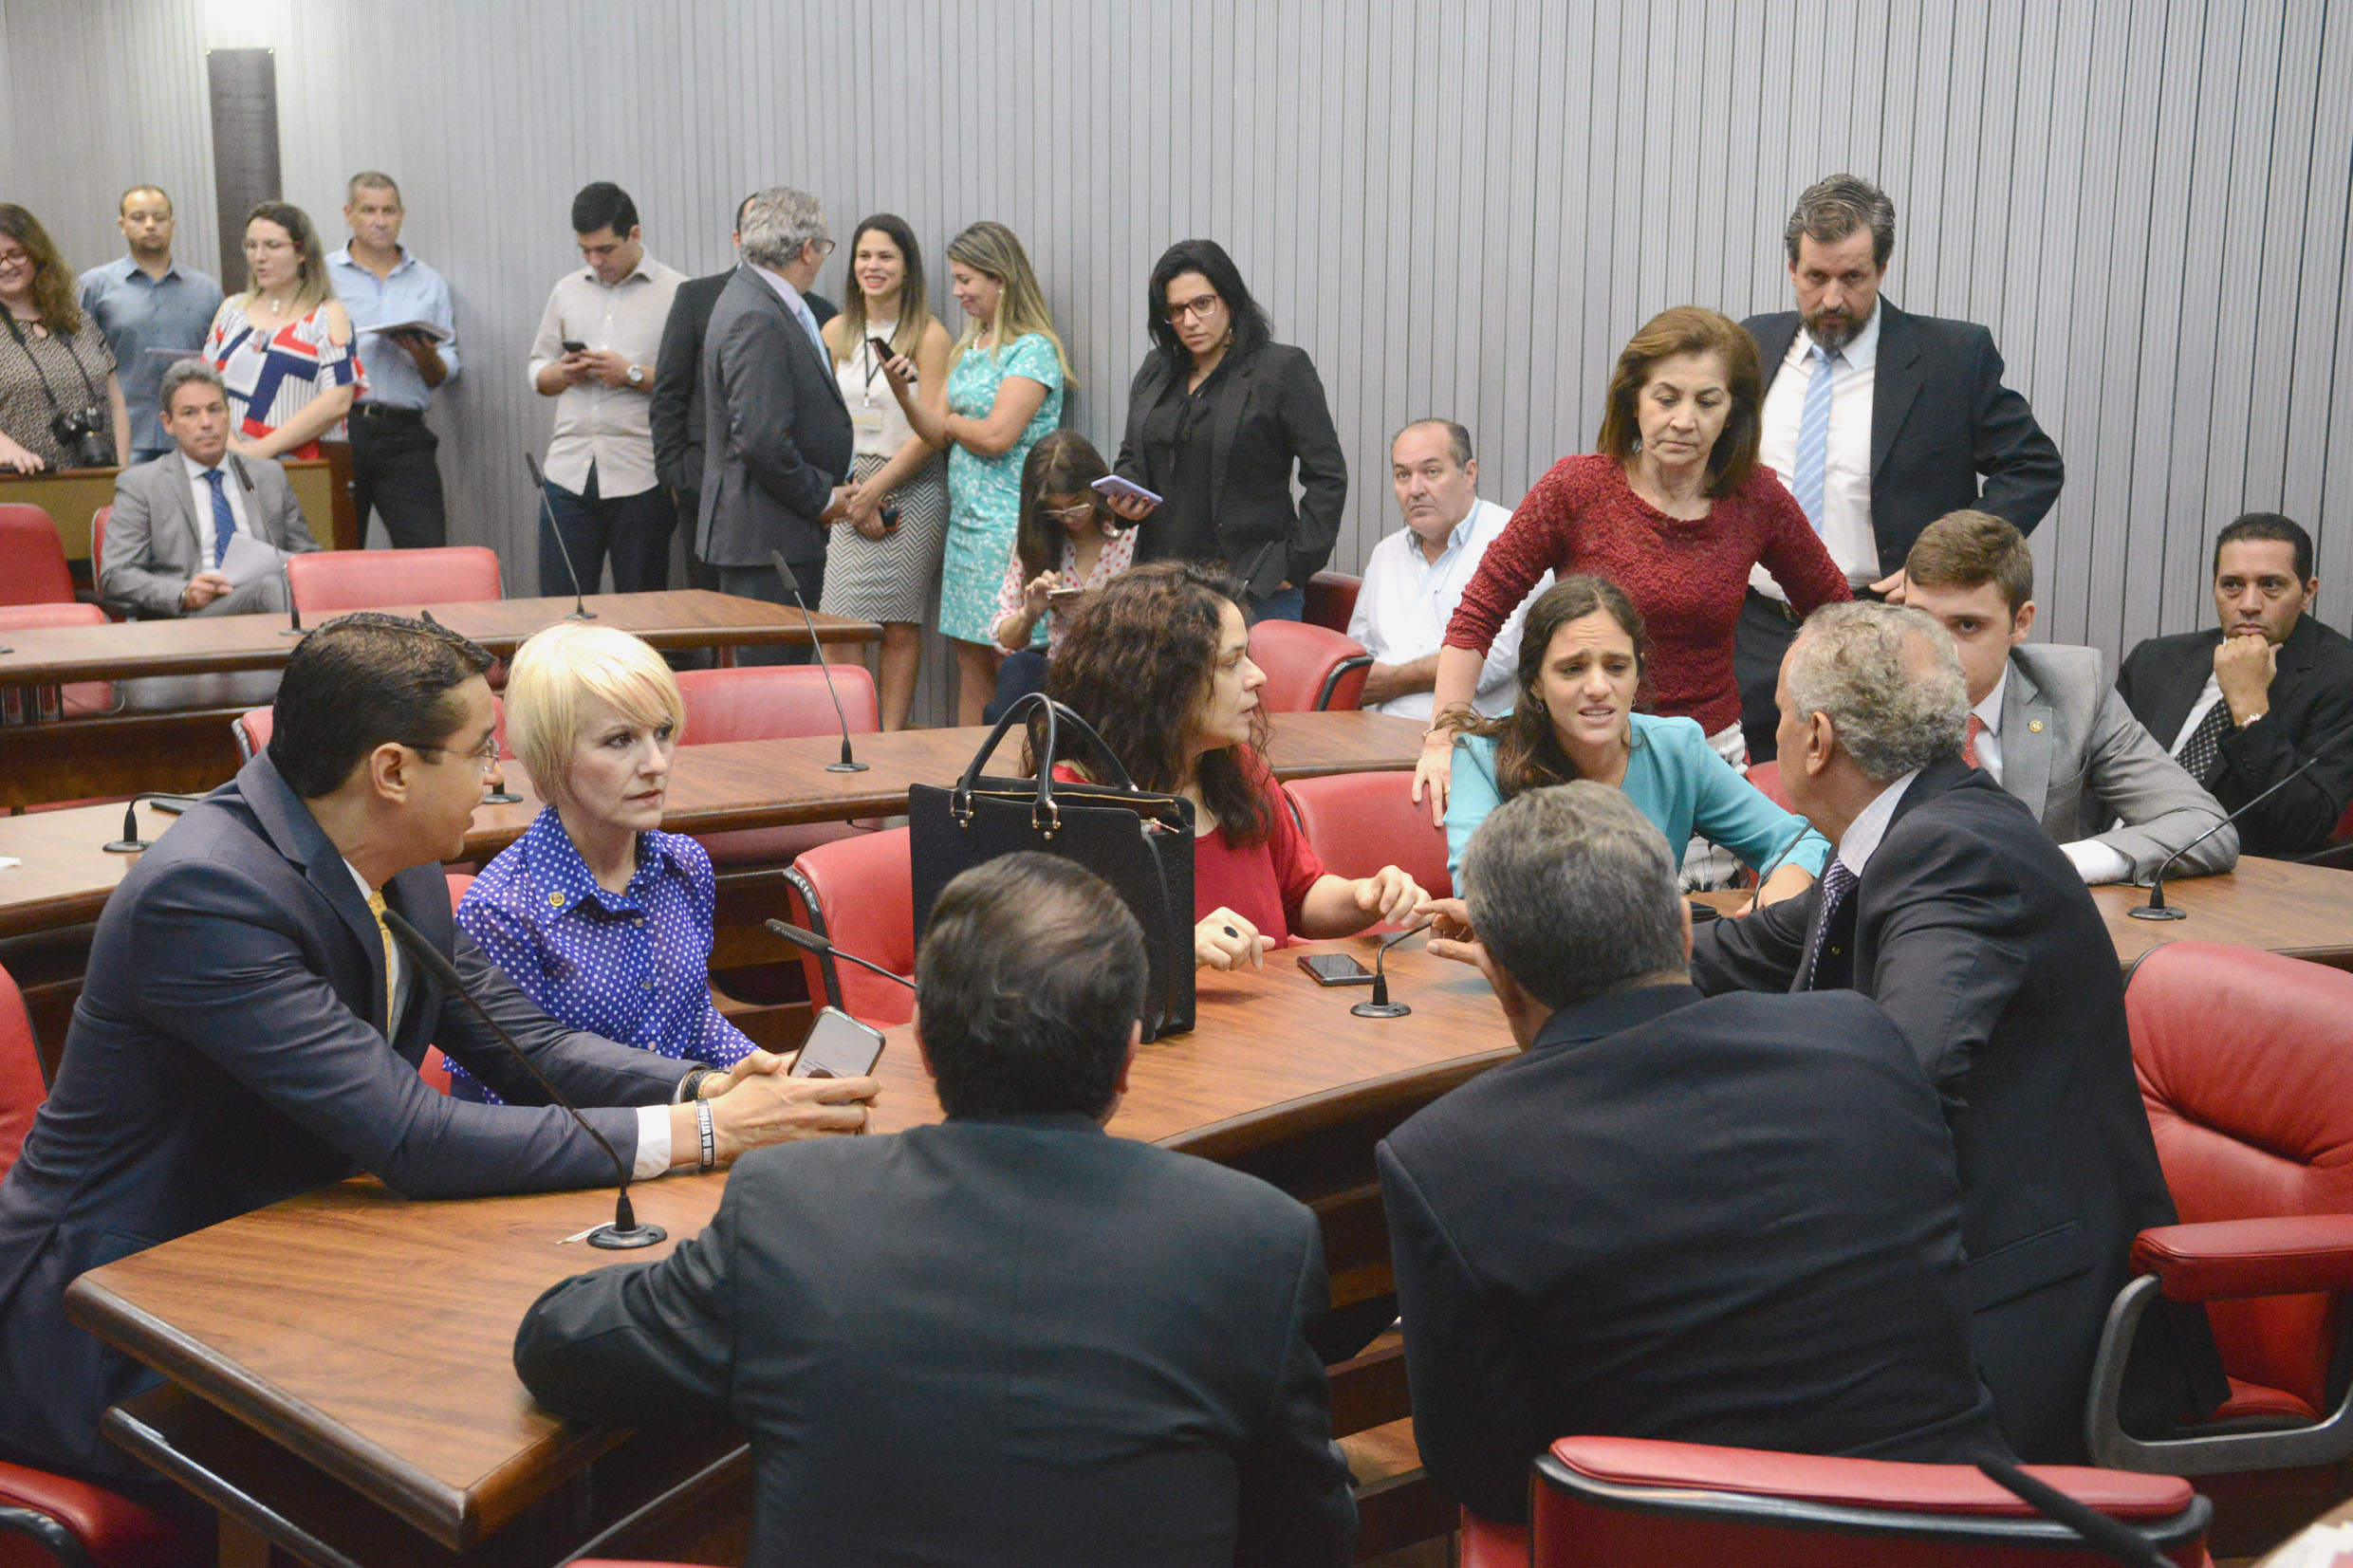 Parlamentares na comissão	<a style='float:right' href='https://www3.al.sp.gov.br/repositorio/noticia/N-04-2019/fg232903.jpg' target=_blank><img src='/_img/material-file-download-white.png' width='14px' alt='Clique para baixar a imagem'></a>